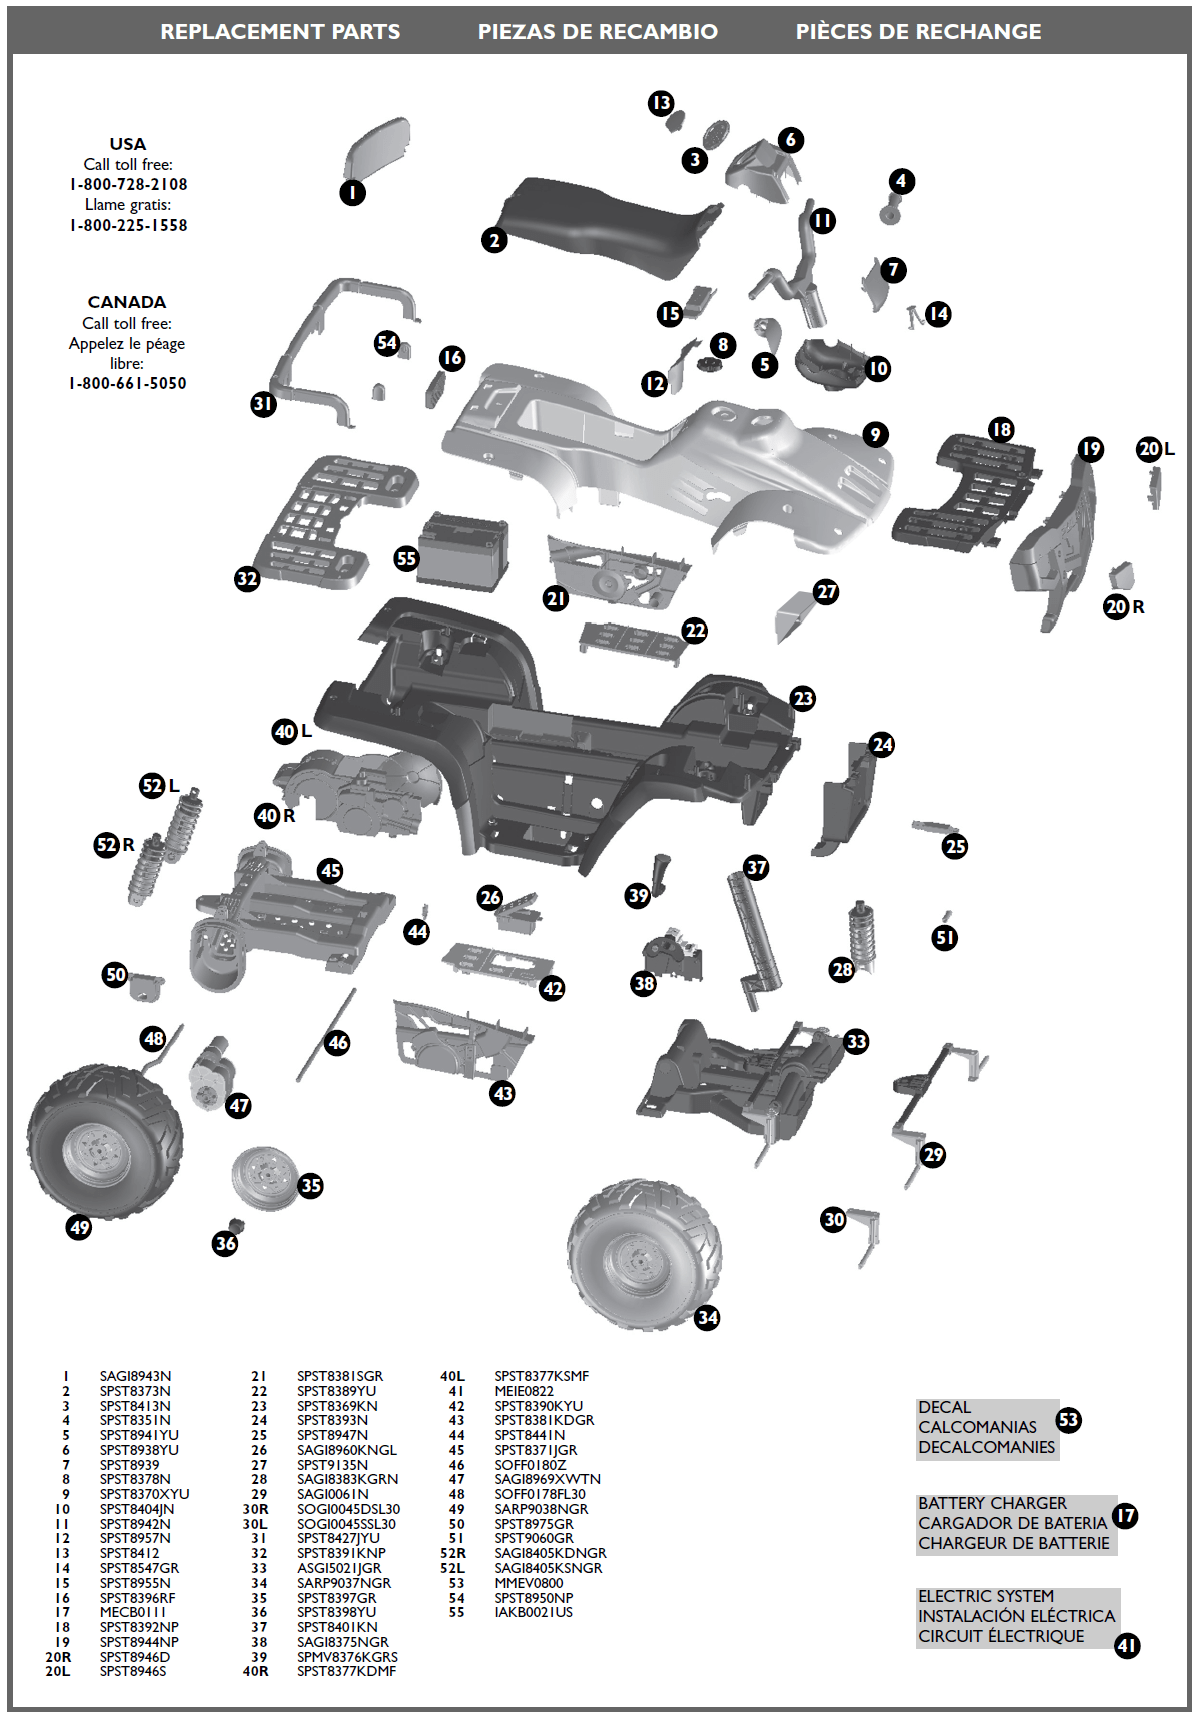 polaris sportsman 90 parts diagram black bear vitals xp850 igod0515 kidswheels